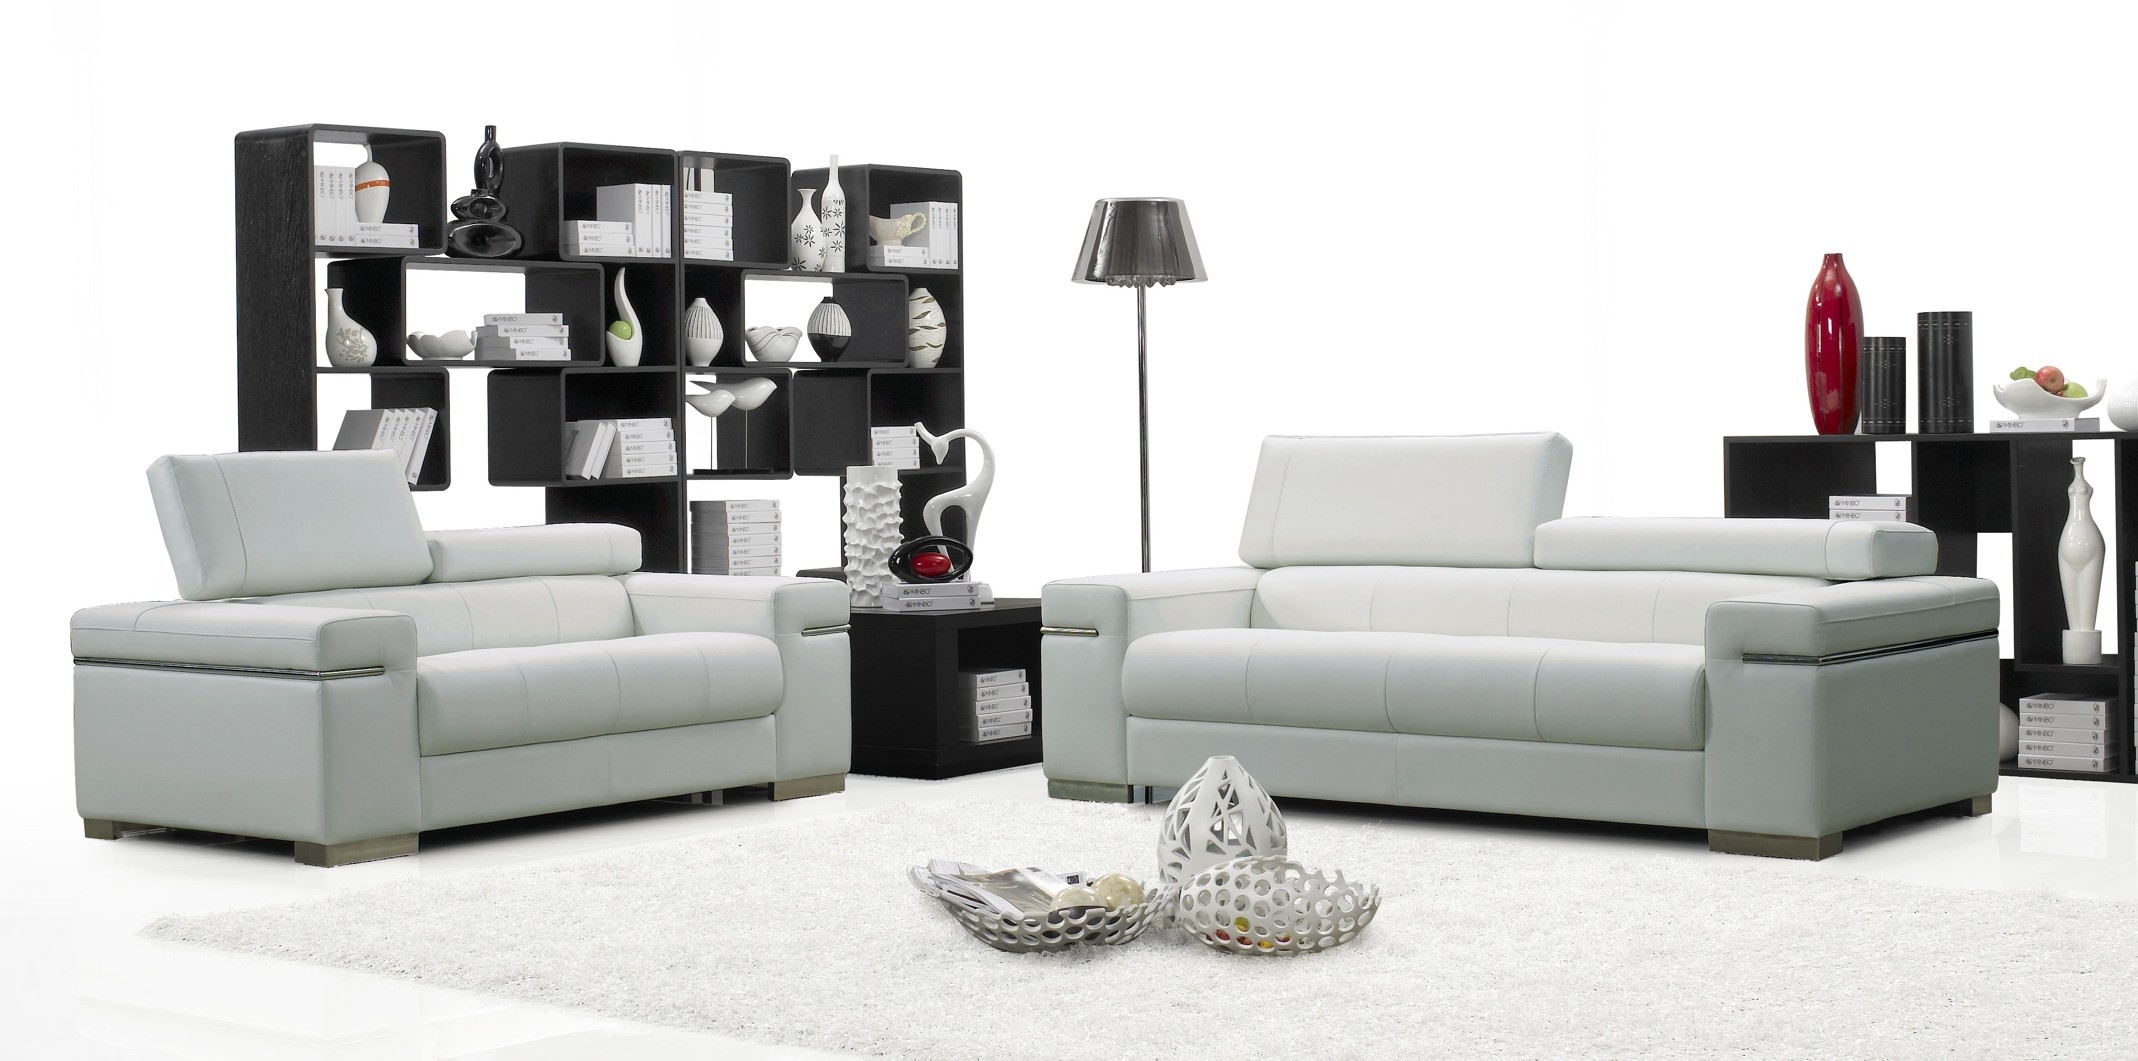 Contemporary Sofa Furniture For Contemporary Sofas And Chairs (Image 2 of 15)